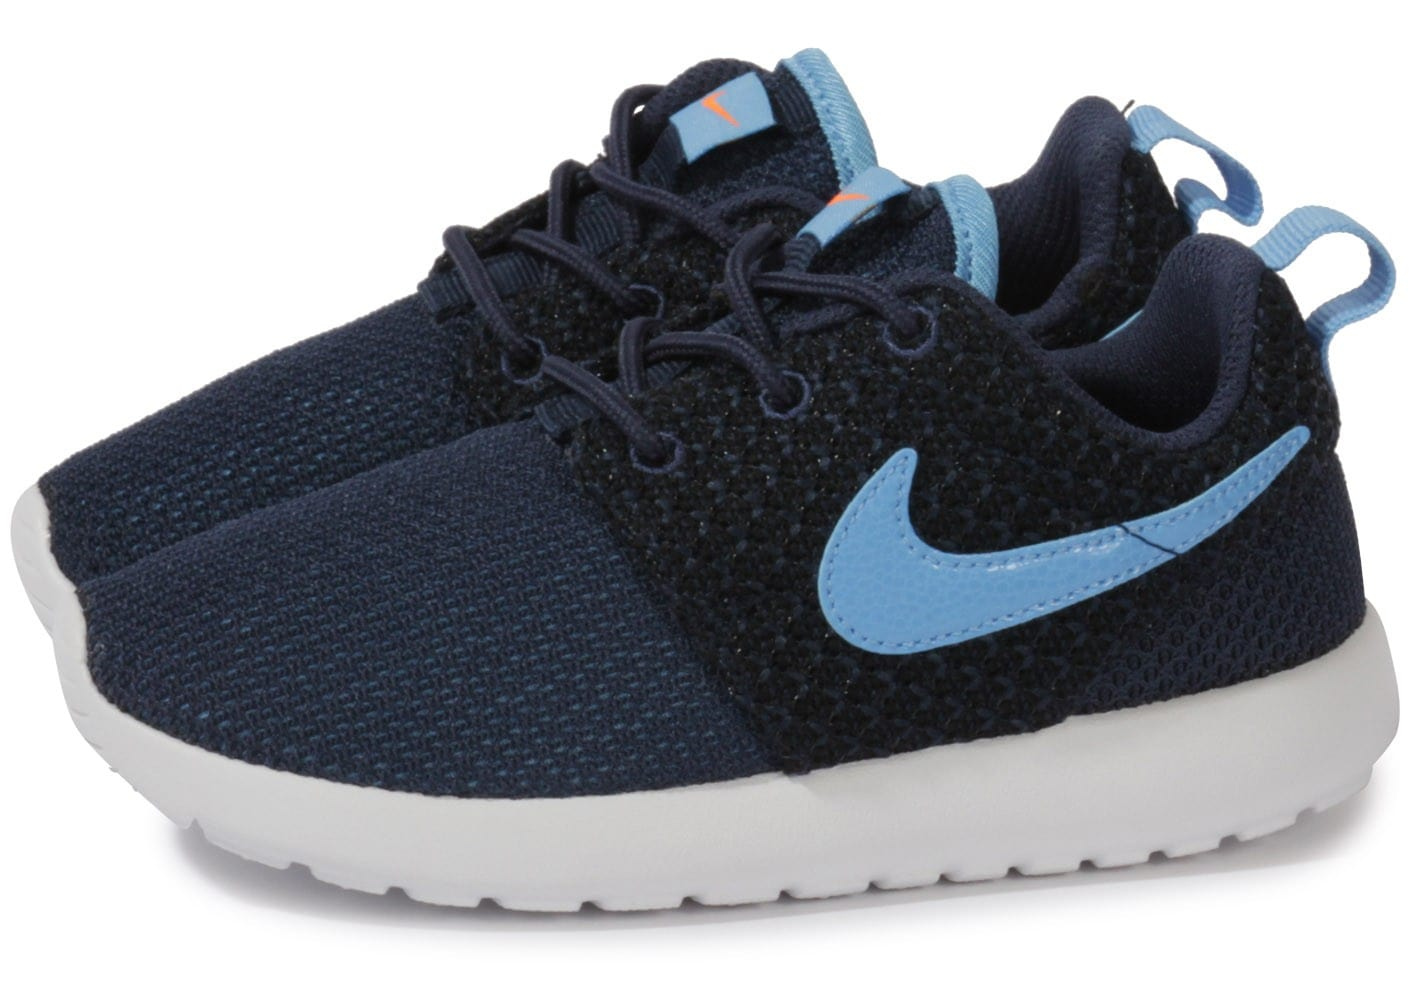 arrives fashion styles official supplier Nike Roshe Run Enfant Bleu Marine - Chaussures Chaussures ...